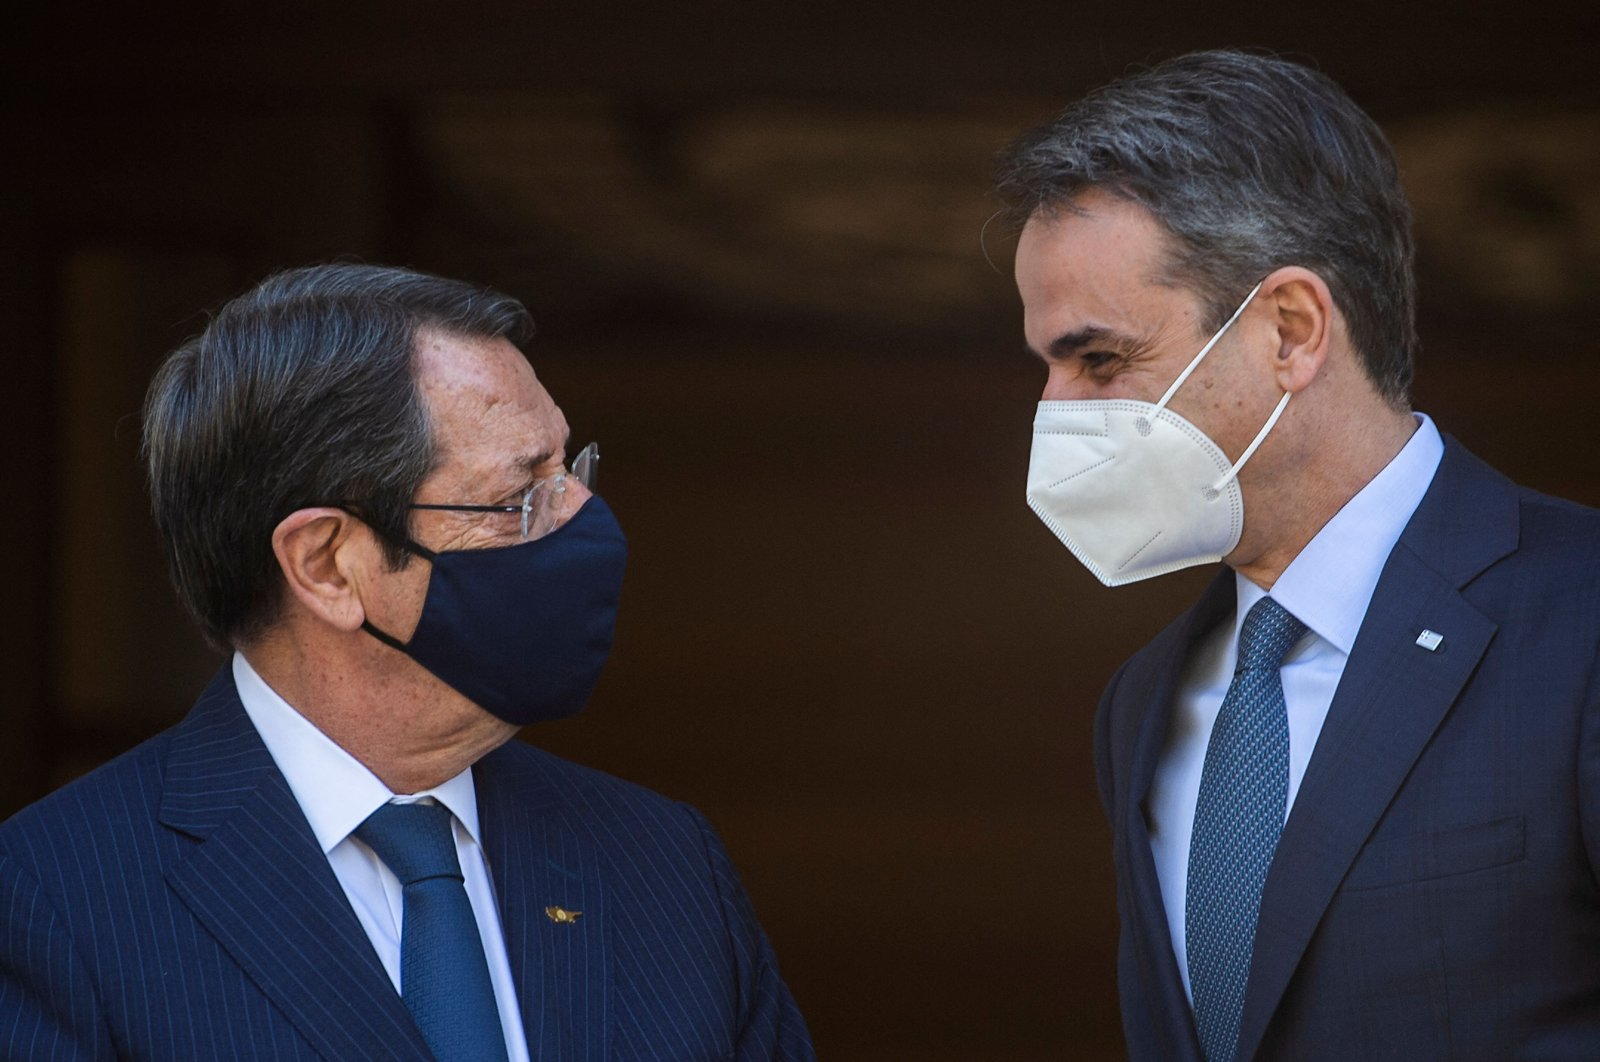 Greek Prime Minister Kyriakos Mitsotakis (R) welcomes Greek Cypriot leader Nicos Anastasiades (L) before their meeting at Maximos Mansion in Athens, Greece, April 21, 2021. (AFP)